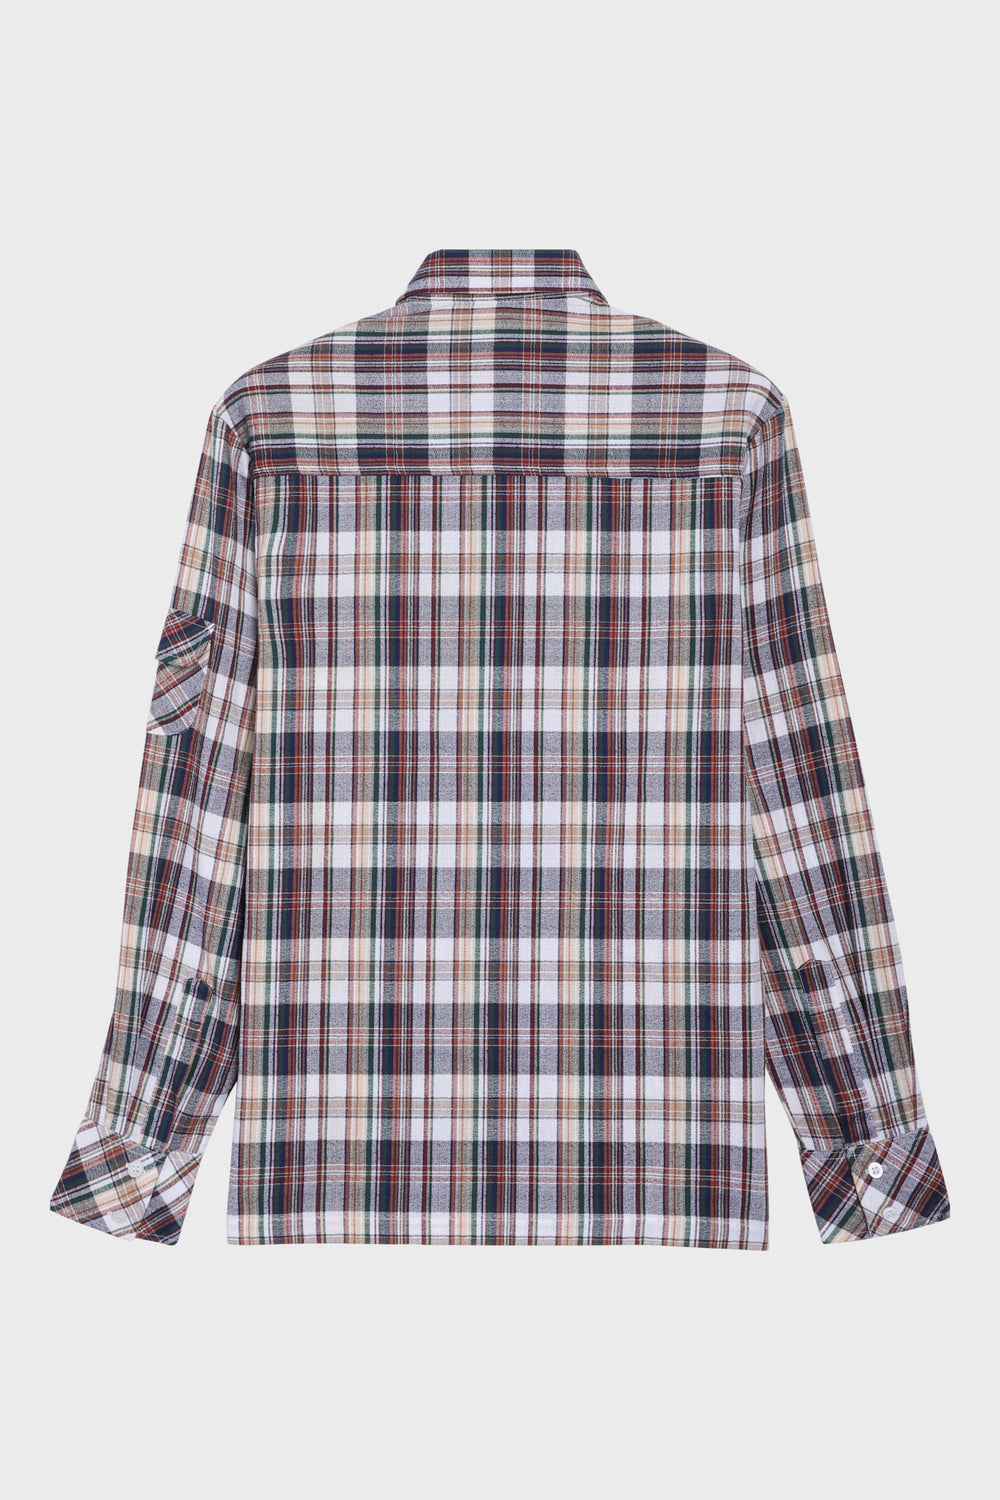 product-color-Multicolor Plaid Shirt